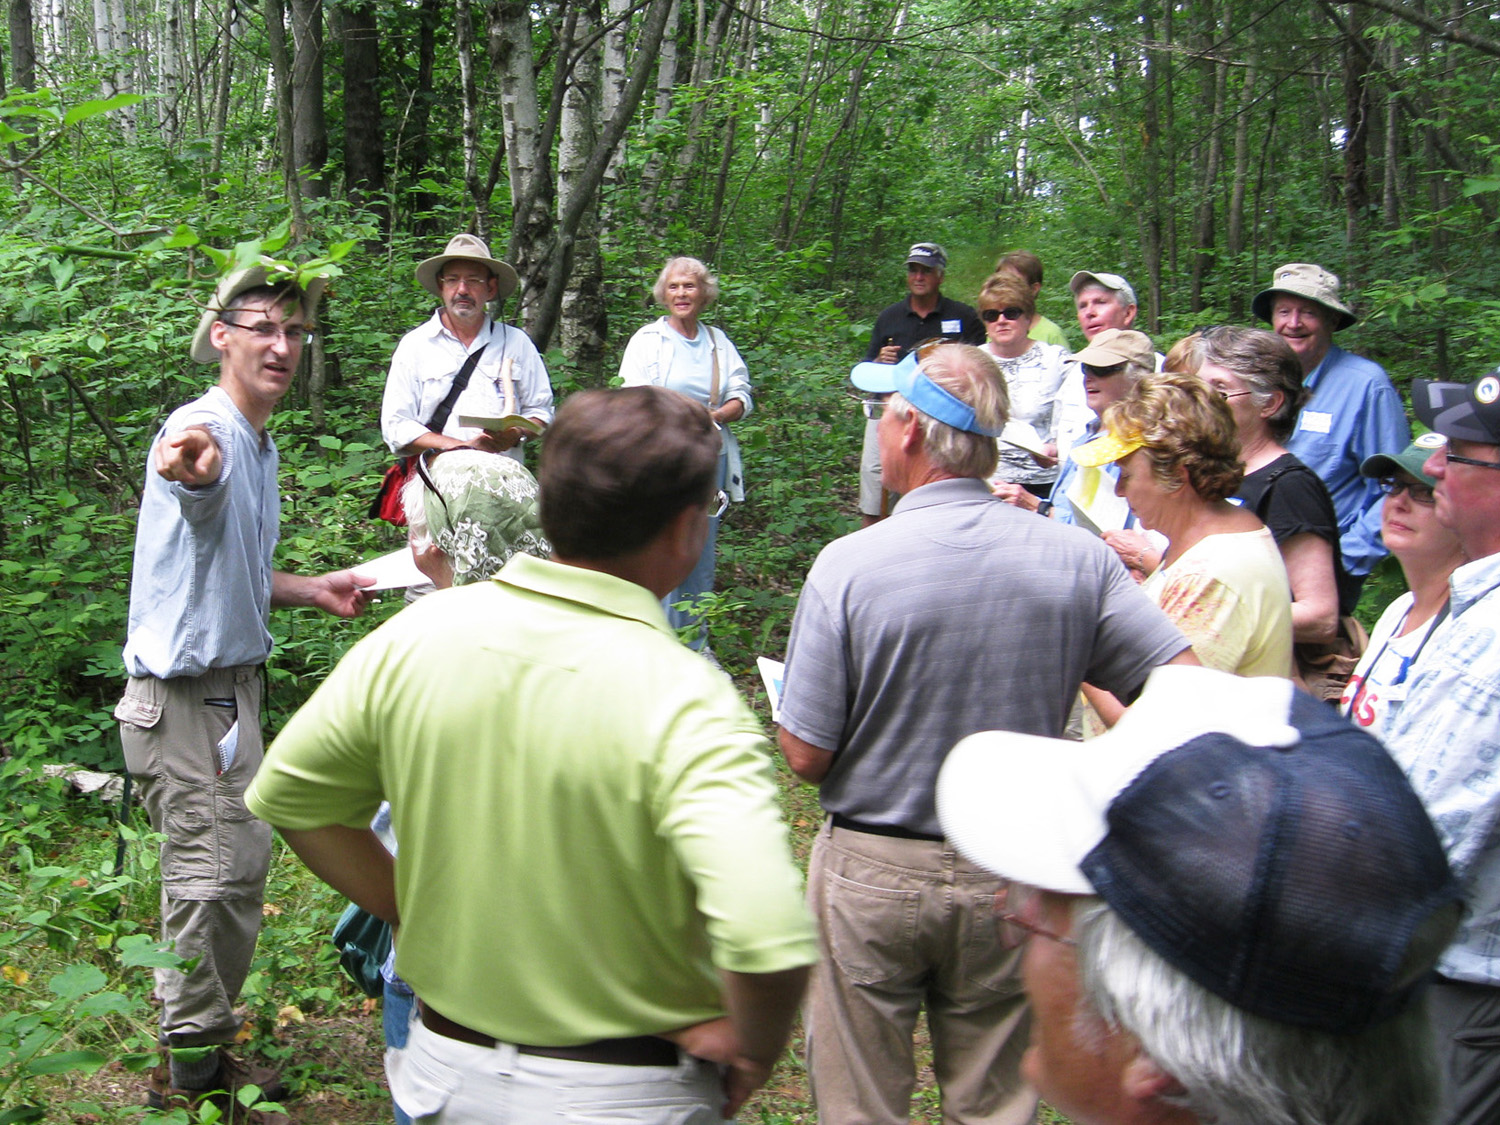 Dan leads survey reenactment hike at Bay Shore Blufflands